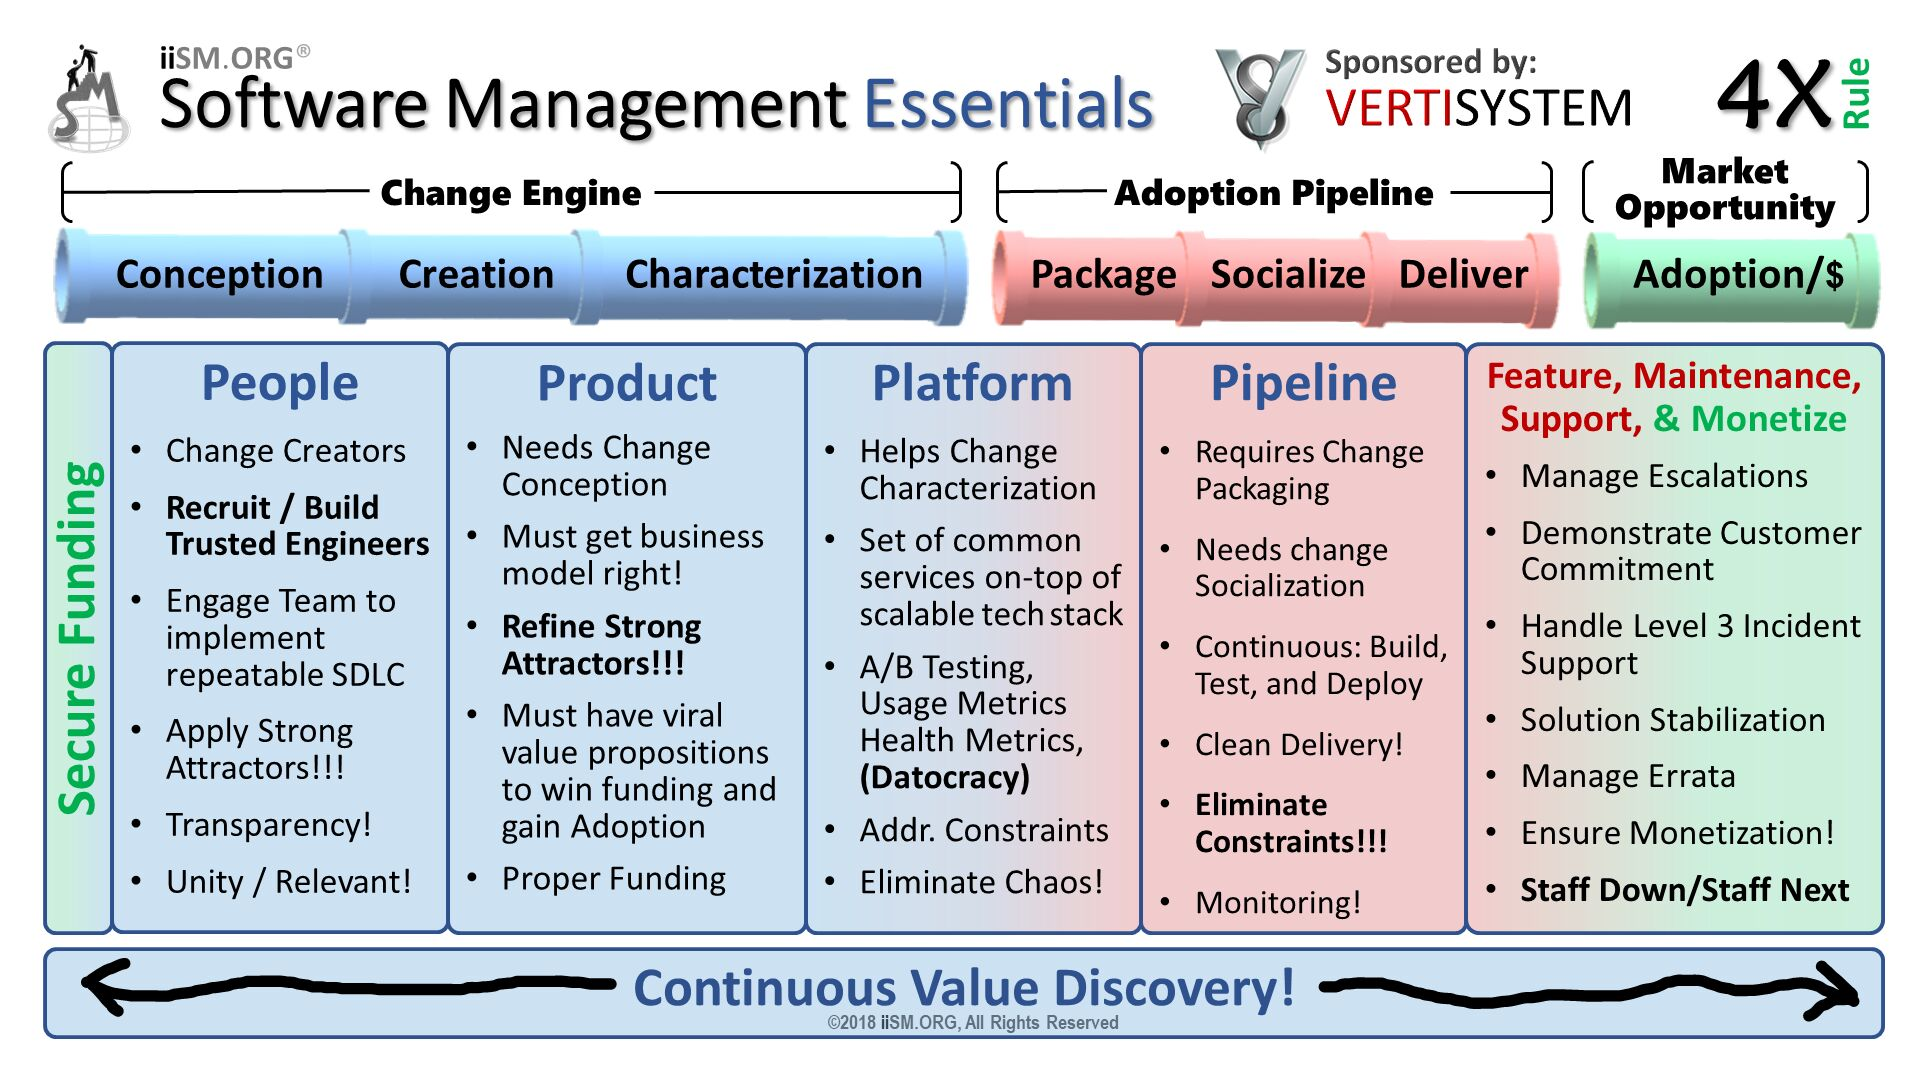 Software Management Essentials. ©2018 iiSM.ORG, All Rights Reserved. People Change Creators Recruit / Build Trusted Engineers Engage Team to implement repeatable SDLC  Apply Strong Attractors!!! Transparency! Unity / Relevant!  . Product Needs Change Conception Must get business model right! Refine Strong Attractors!!! Must have viral value propositions to win funding and gain Adoption Proper Funding . Platform Helps Change Characterization Set of common services on-top of scalable tech stack  A/B Testing, Usage Metrics Health Metrics,(Datocracy) Addr. Constraints Eliminate Chaos!  . Pipeline Requires Change Packaging  Needs change Socialization Continuous: Build, Test, and Deploy Clean Delivery! Eliminate Constraints!!! Monitoring! . Feature, Maintenance, Support, & Monetize Manage Escalations Demonstrate Customer Commitment Handle Level 3 Incident Support Solution Stabilization Manage Errata Ensure Monetization! Staff Down/Staff Next . Secure Funding. iiSM.ORG®.